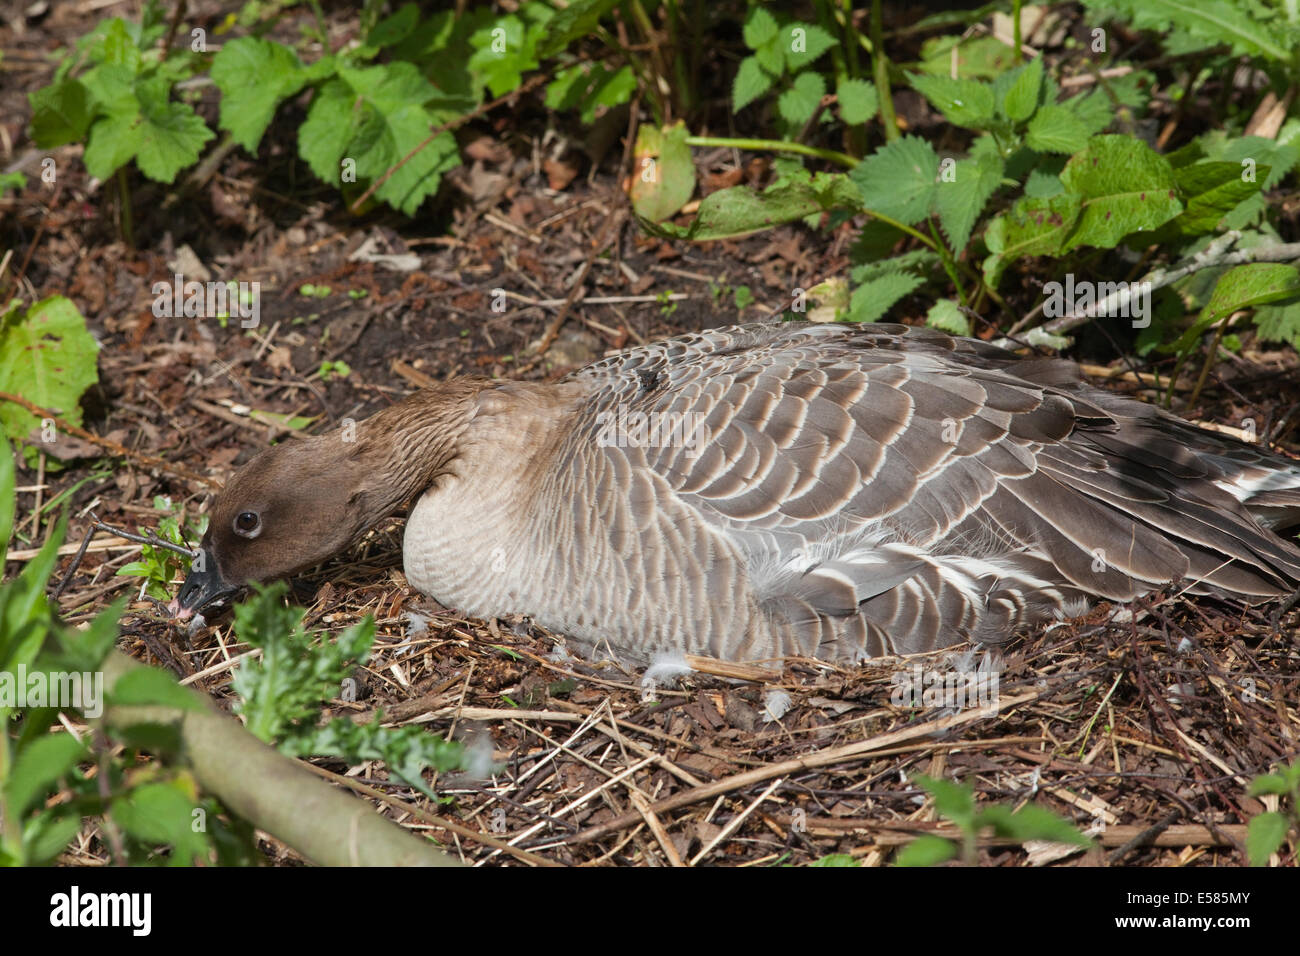 Pink-footed Goose (Anser brachyrhynchus).  Incubating bird on a nest, aware of  possible threat approaching. - Stock Image